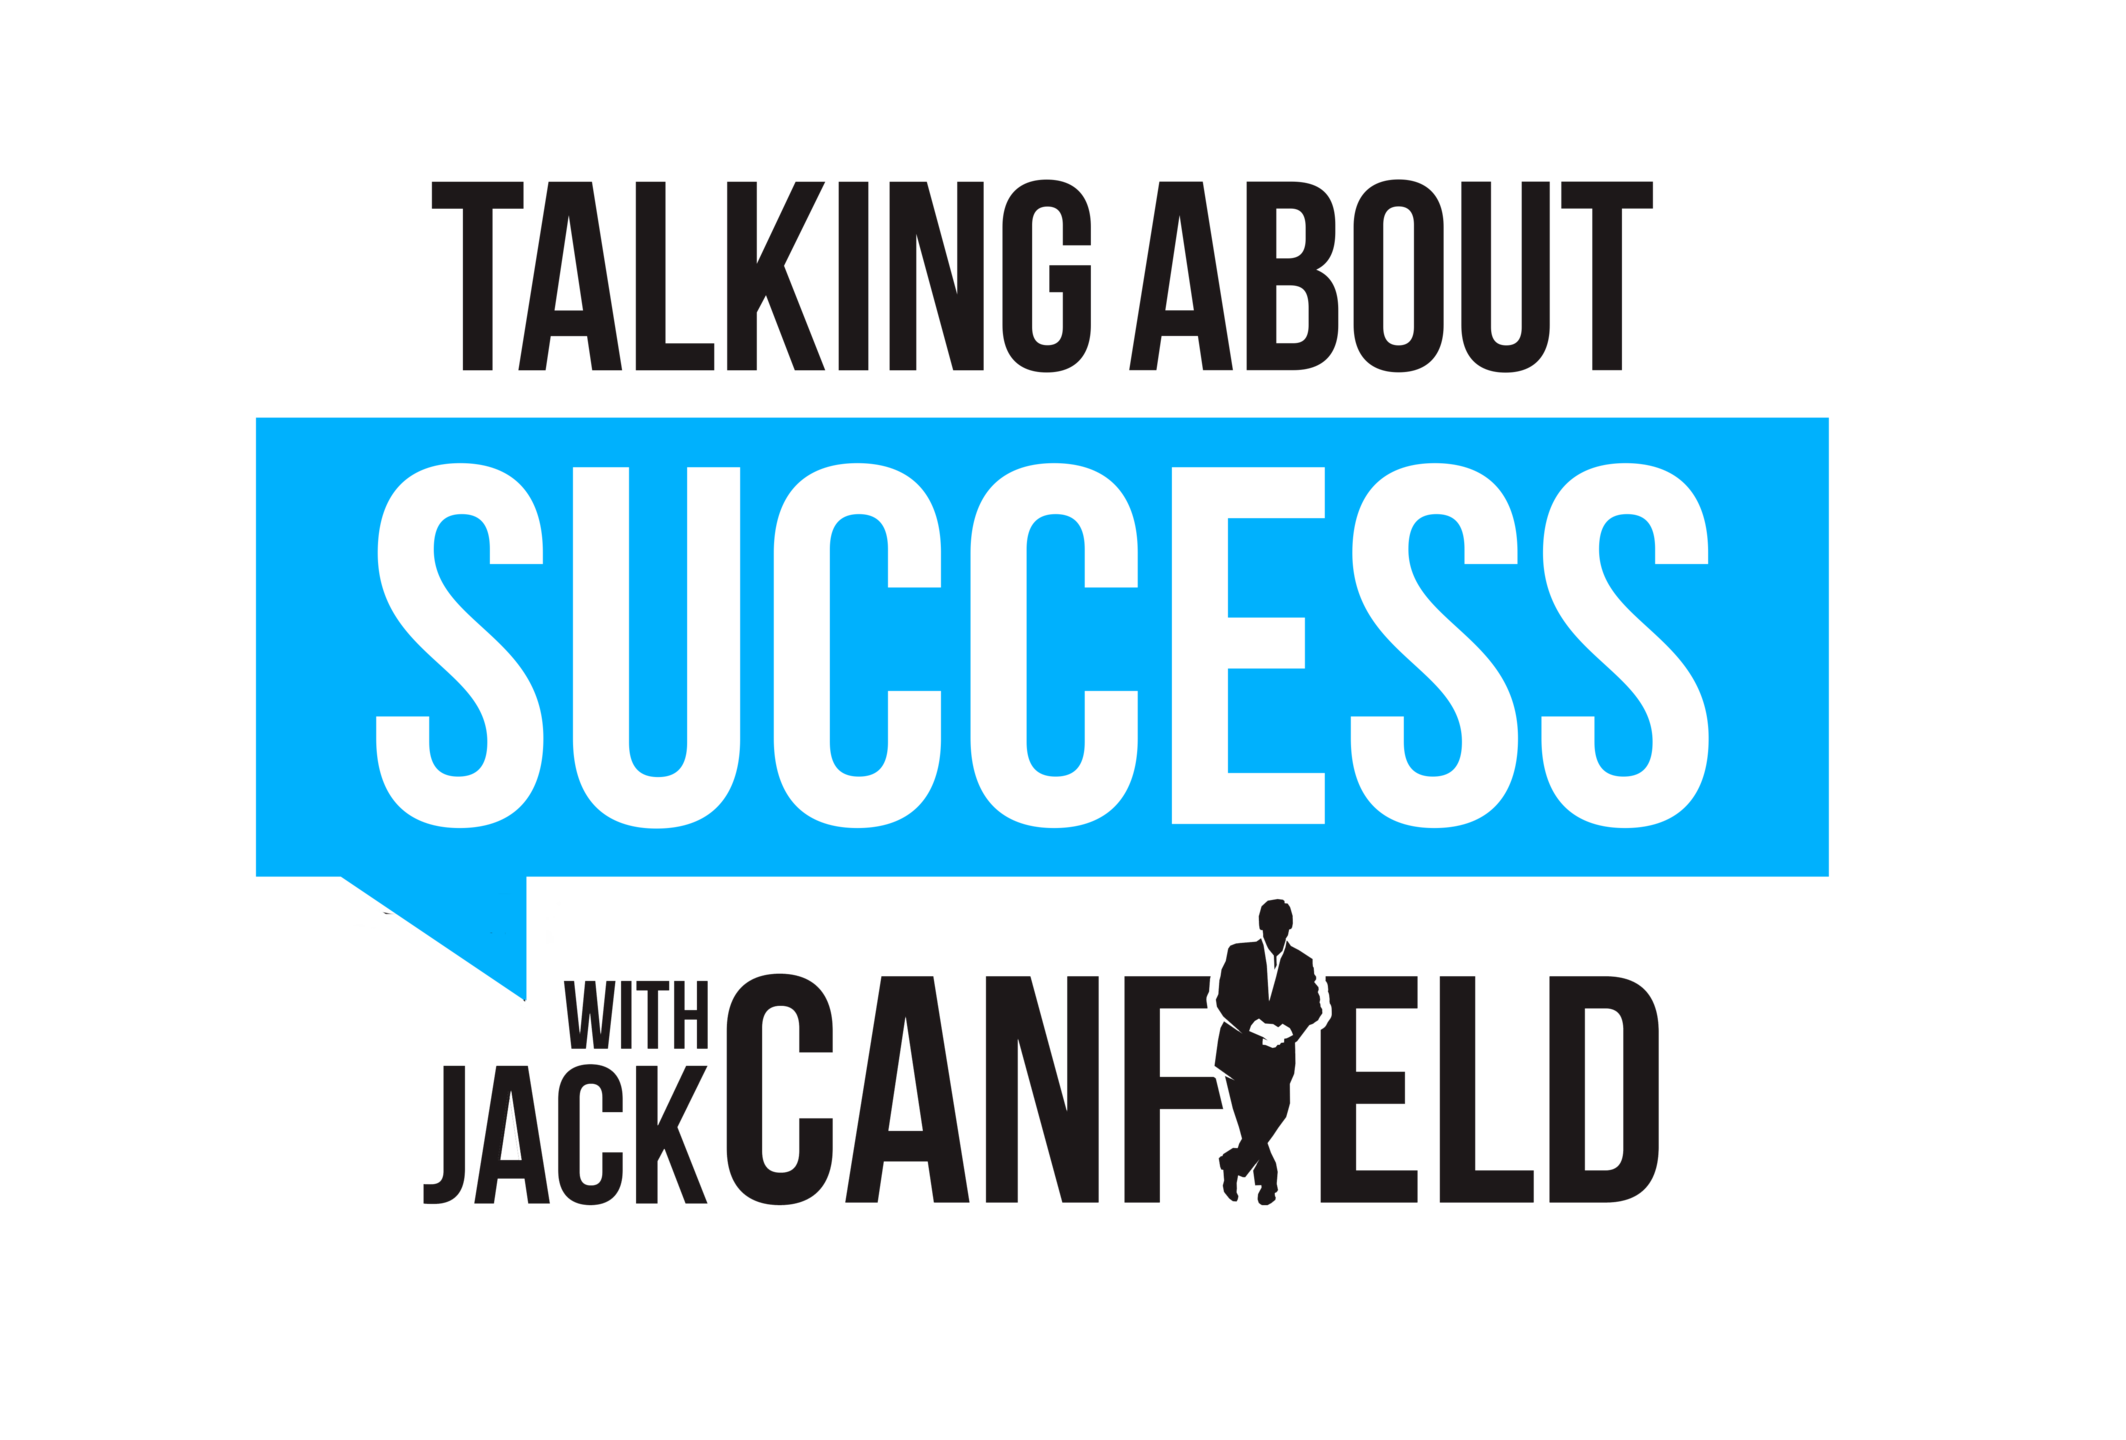 Talking About Success with Jack Canfield Logo